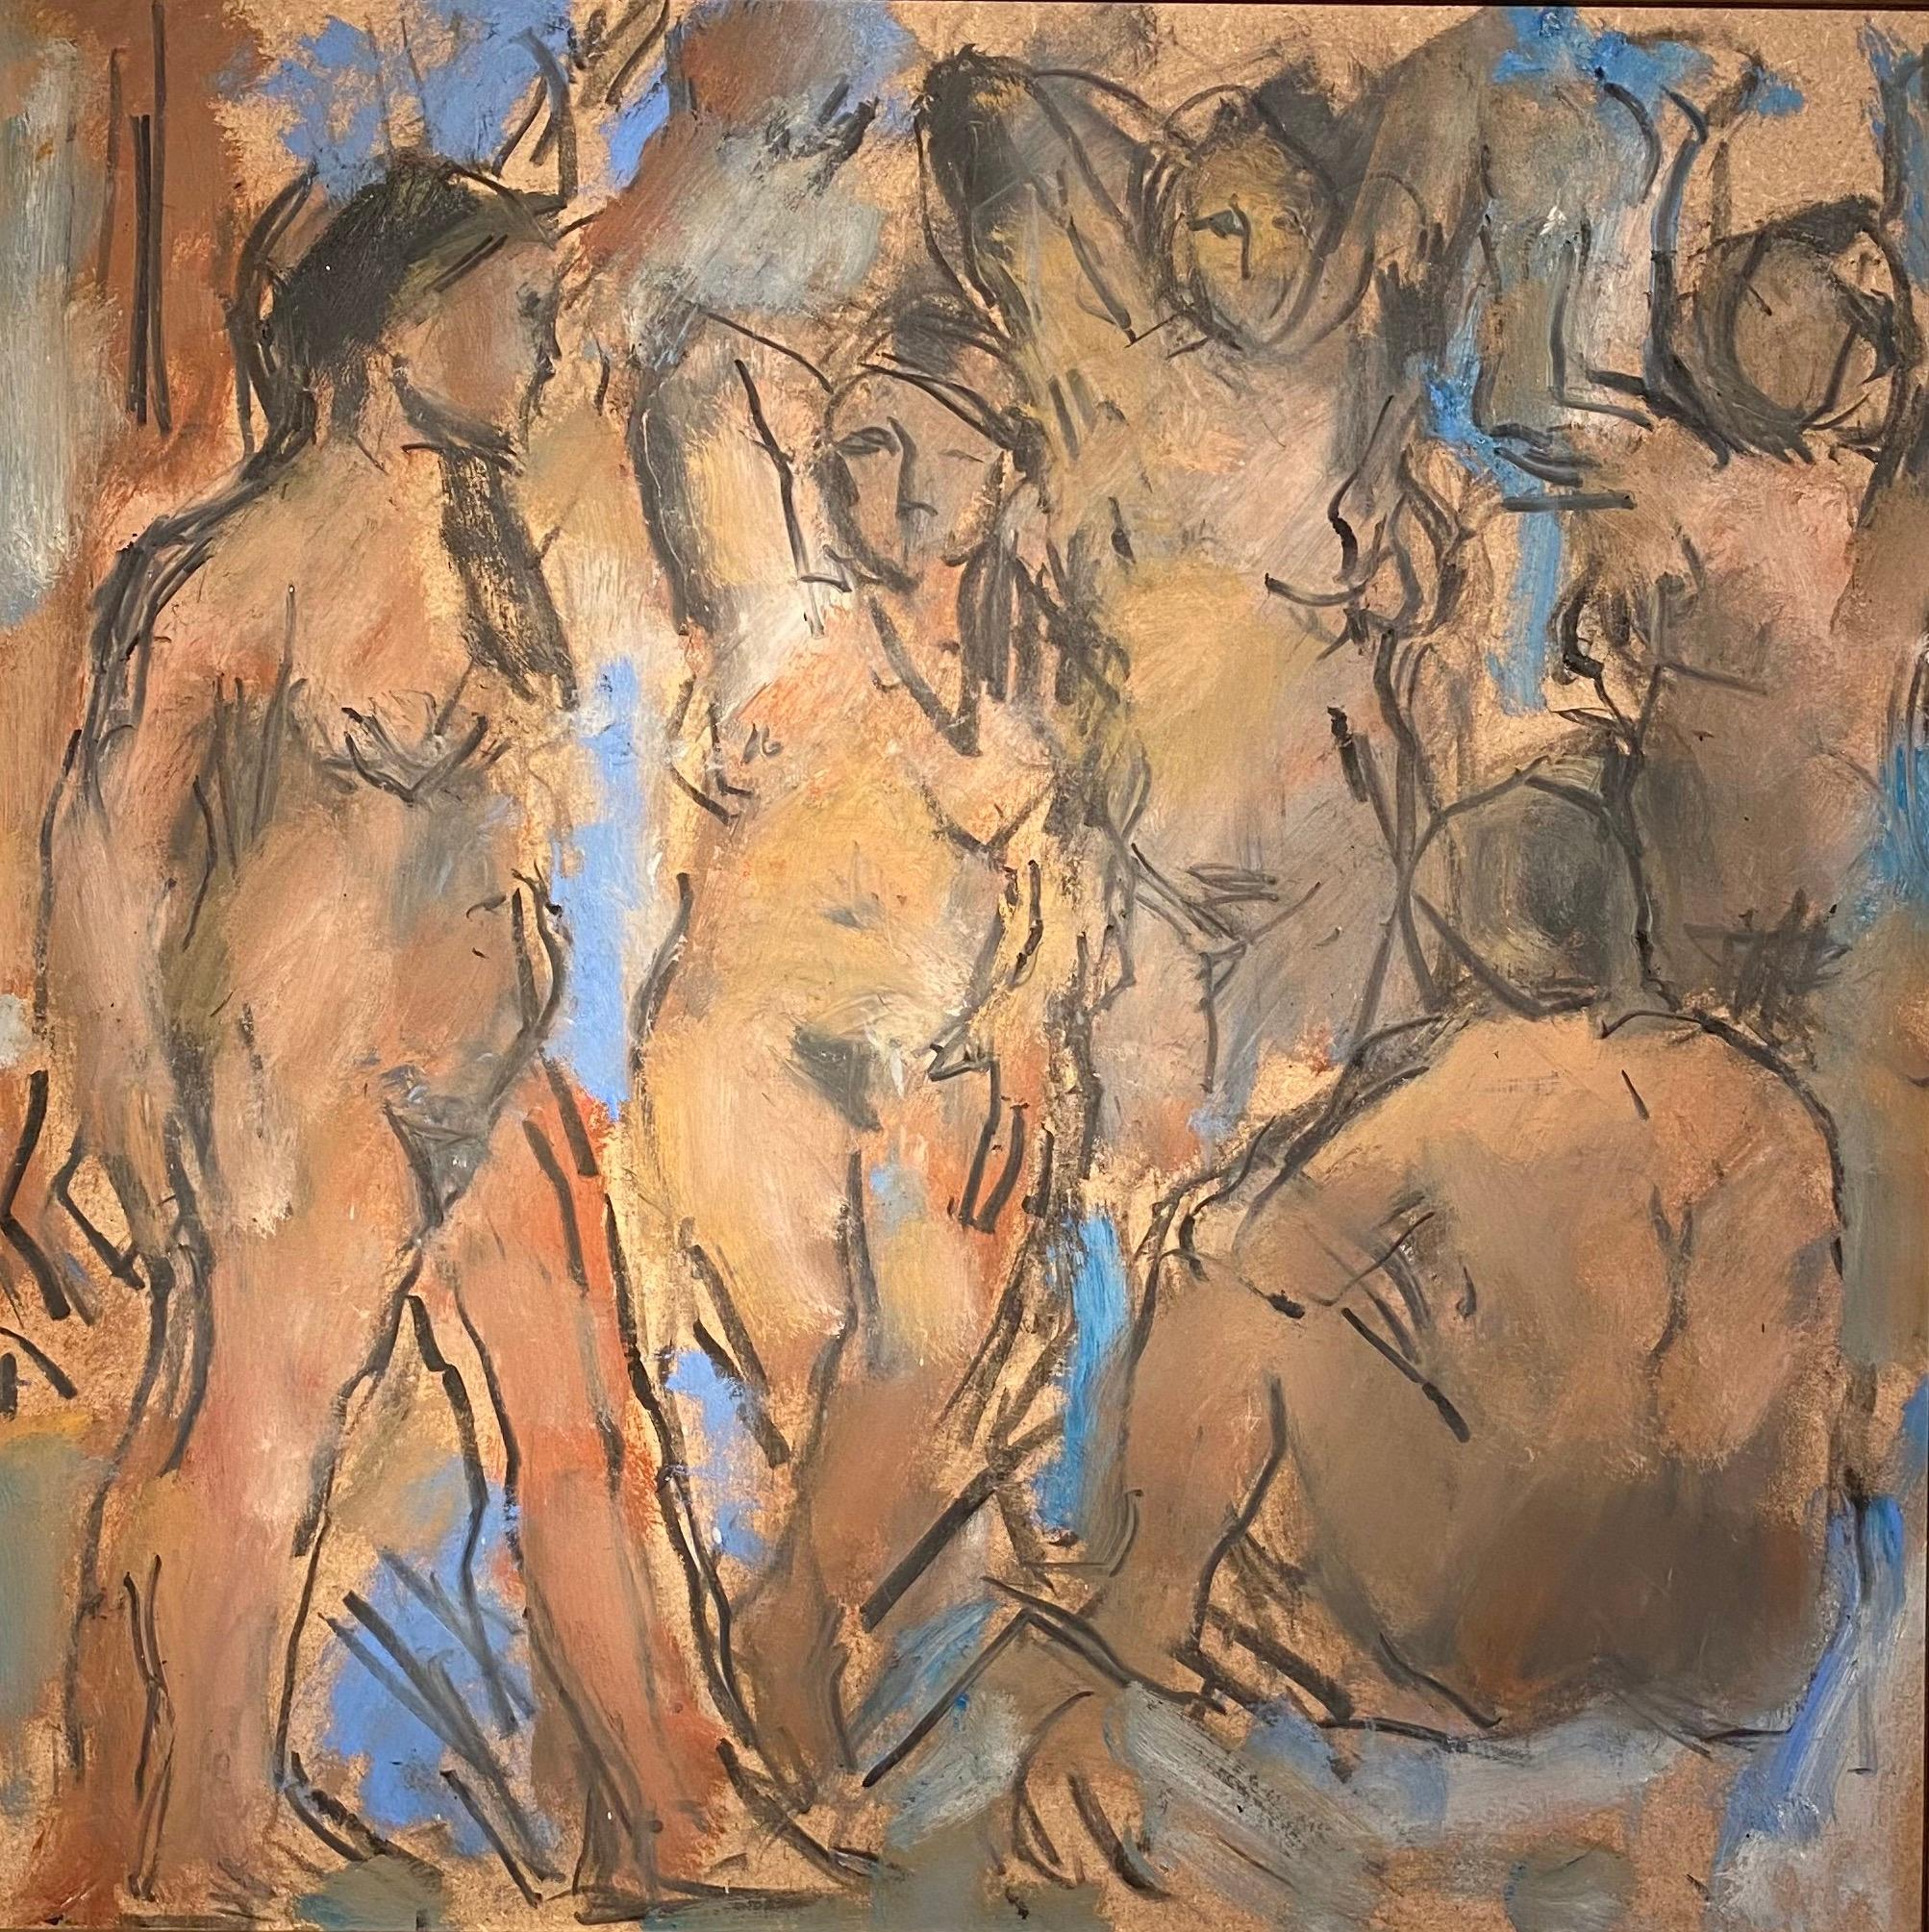 'Re-enacting Picasso' by Ghislaine Howard. Nude Figurative painting inspired